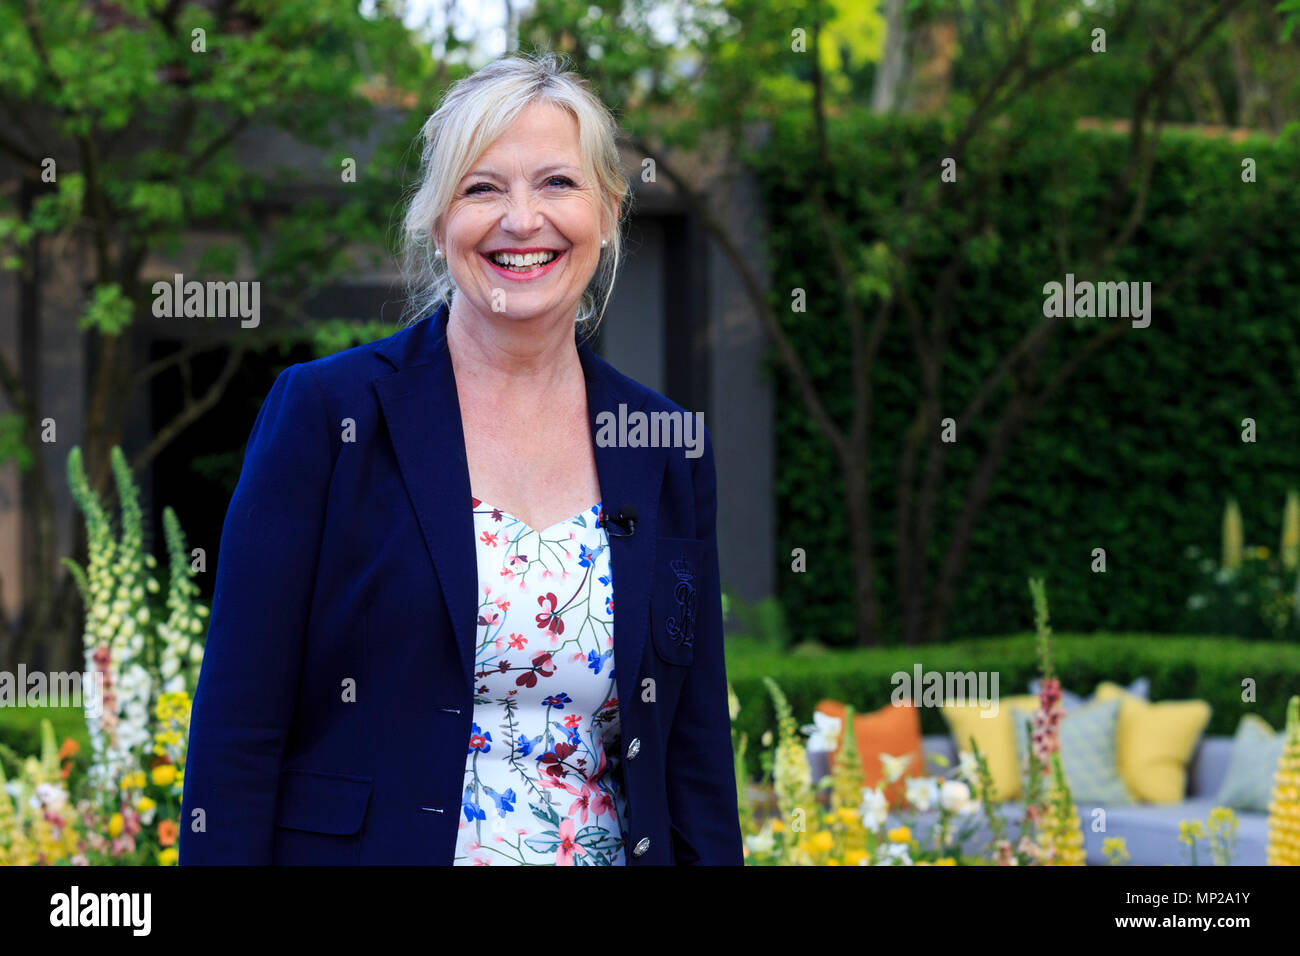 London, UK. 21 May 2018. BBC weather presenter Carol Kirkwood. Press Day at the 2018 RHS Chelsea Flower Show which opens to the public on tomorrow. Photo: Bettina Strenske/Alamy Live News - Stock Image